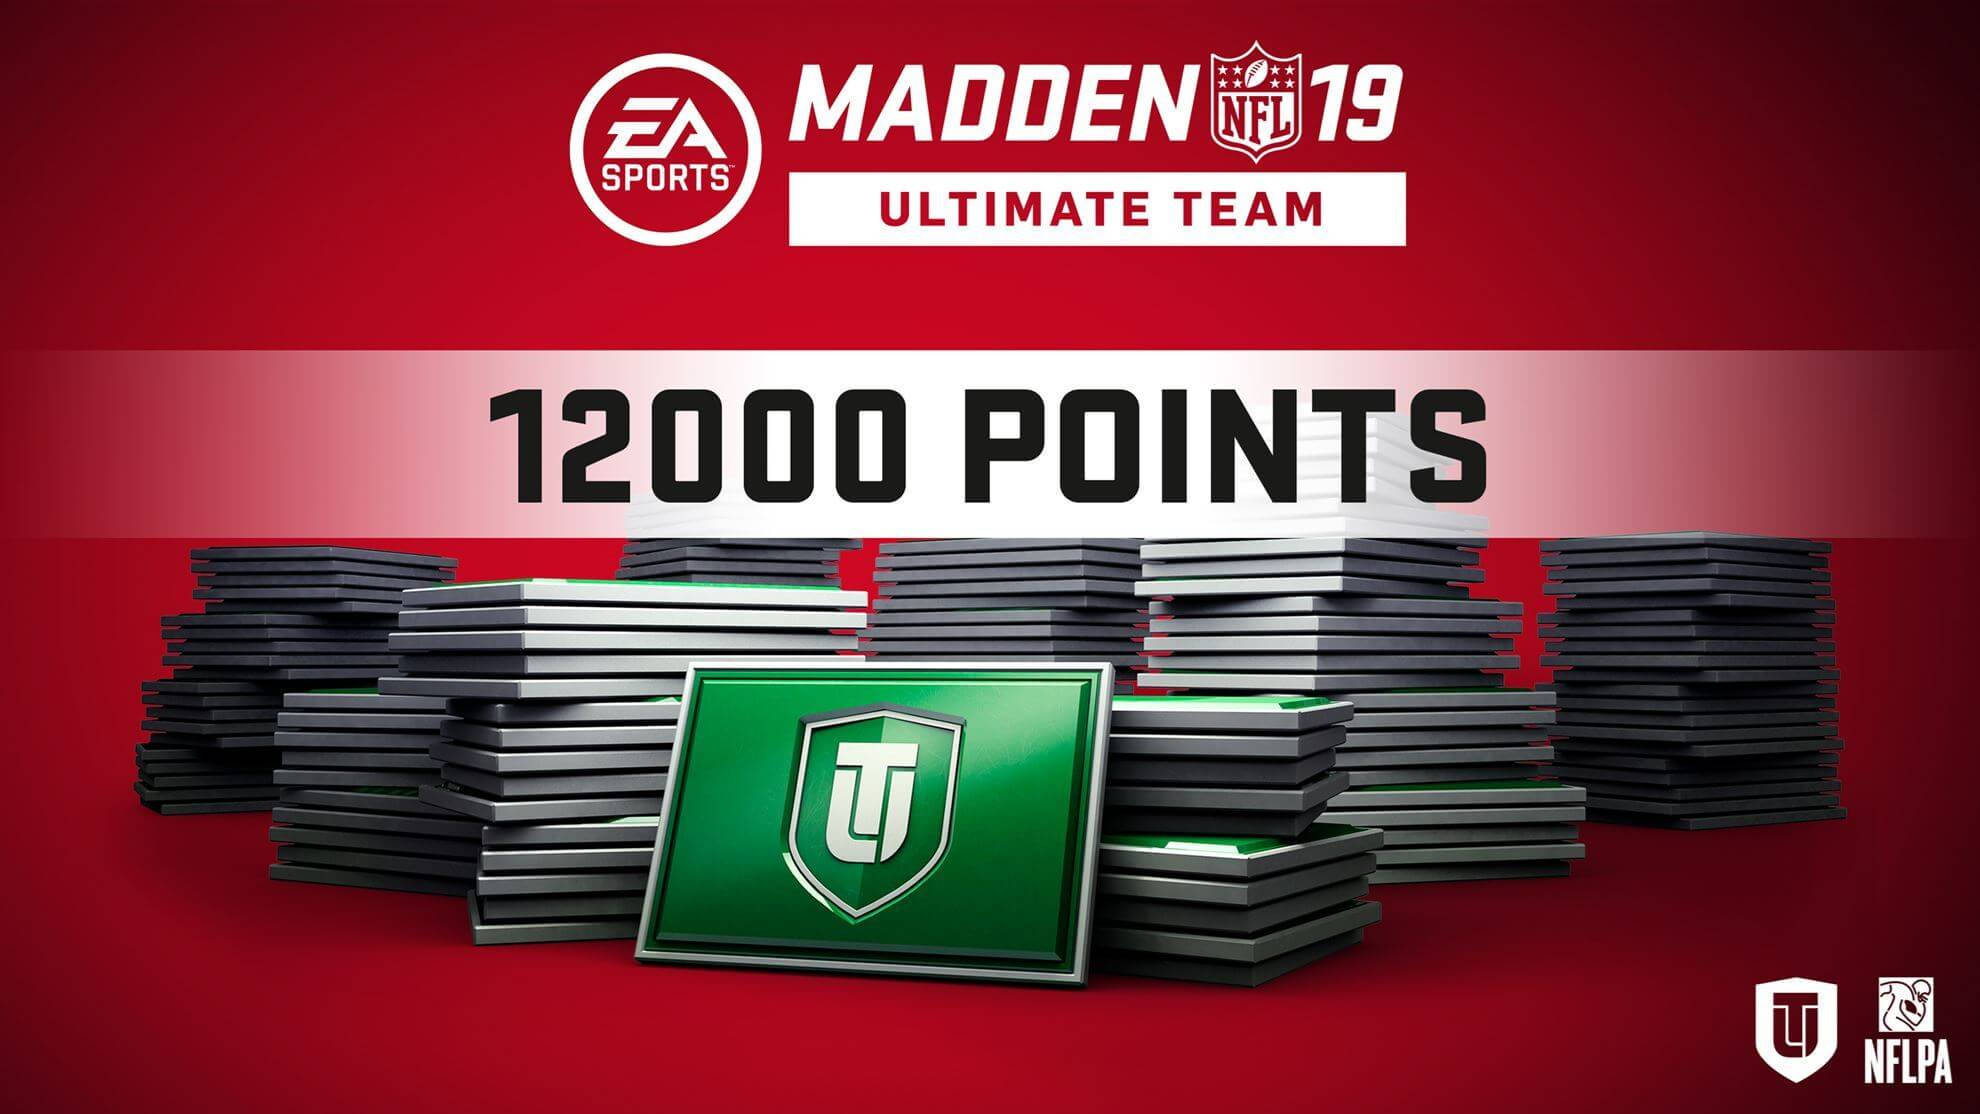 Madden NFL 19 Ultimate Team 12000 Points Pack